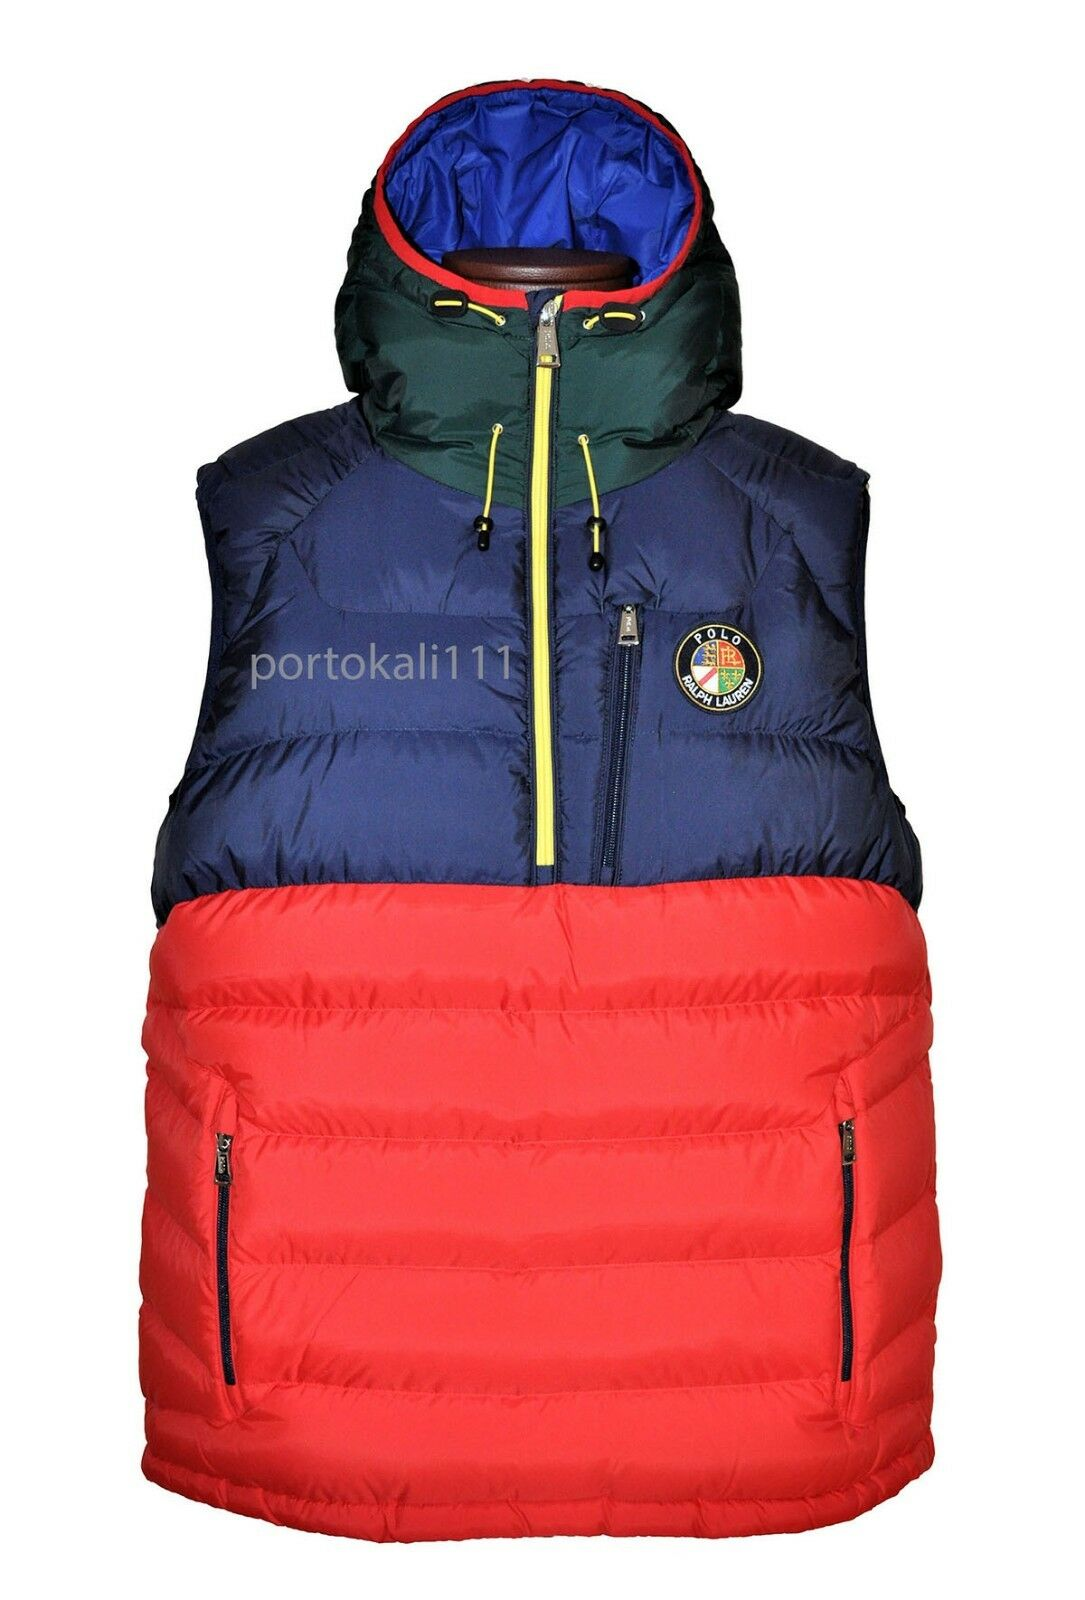 Polo Ralph Lauren Men's Downhill Skier Down Vest Polo Sport Red New